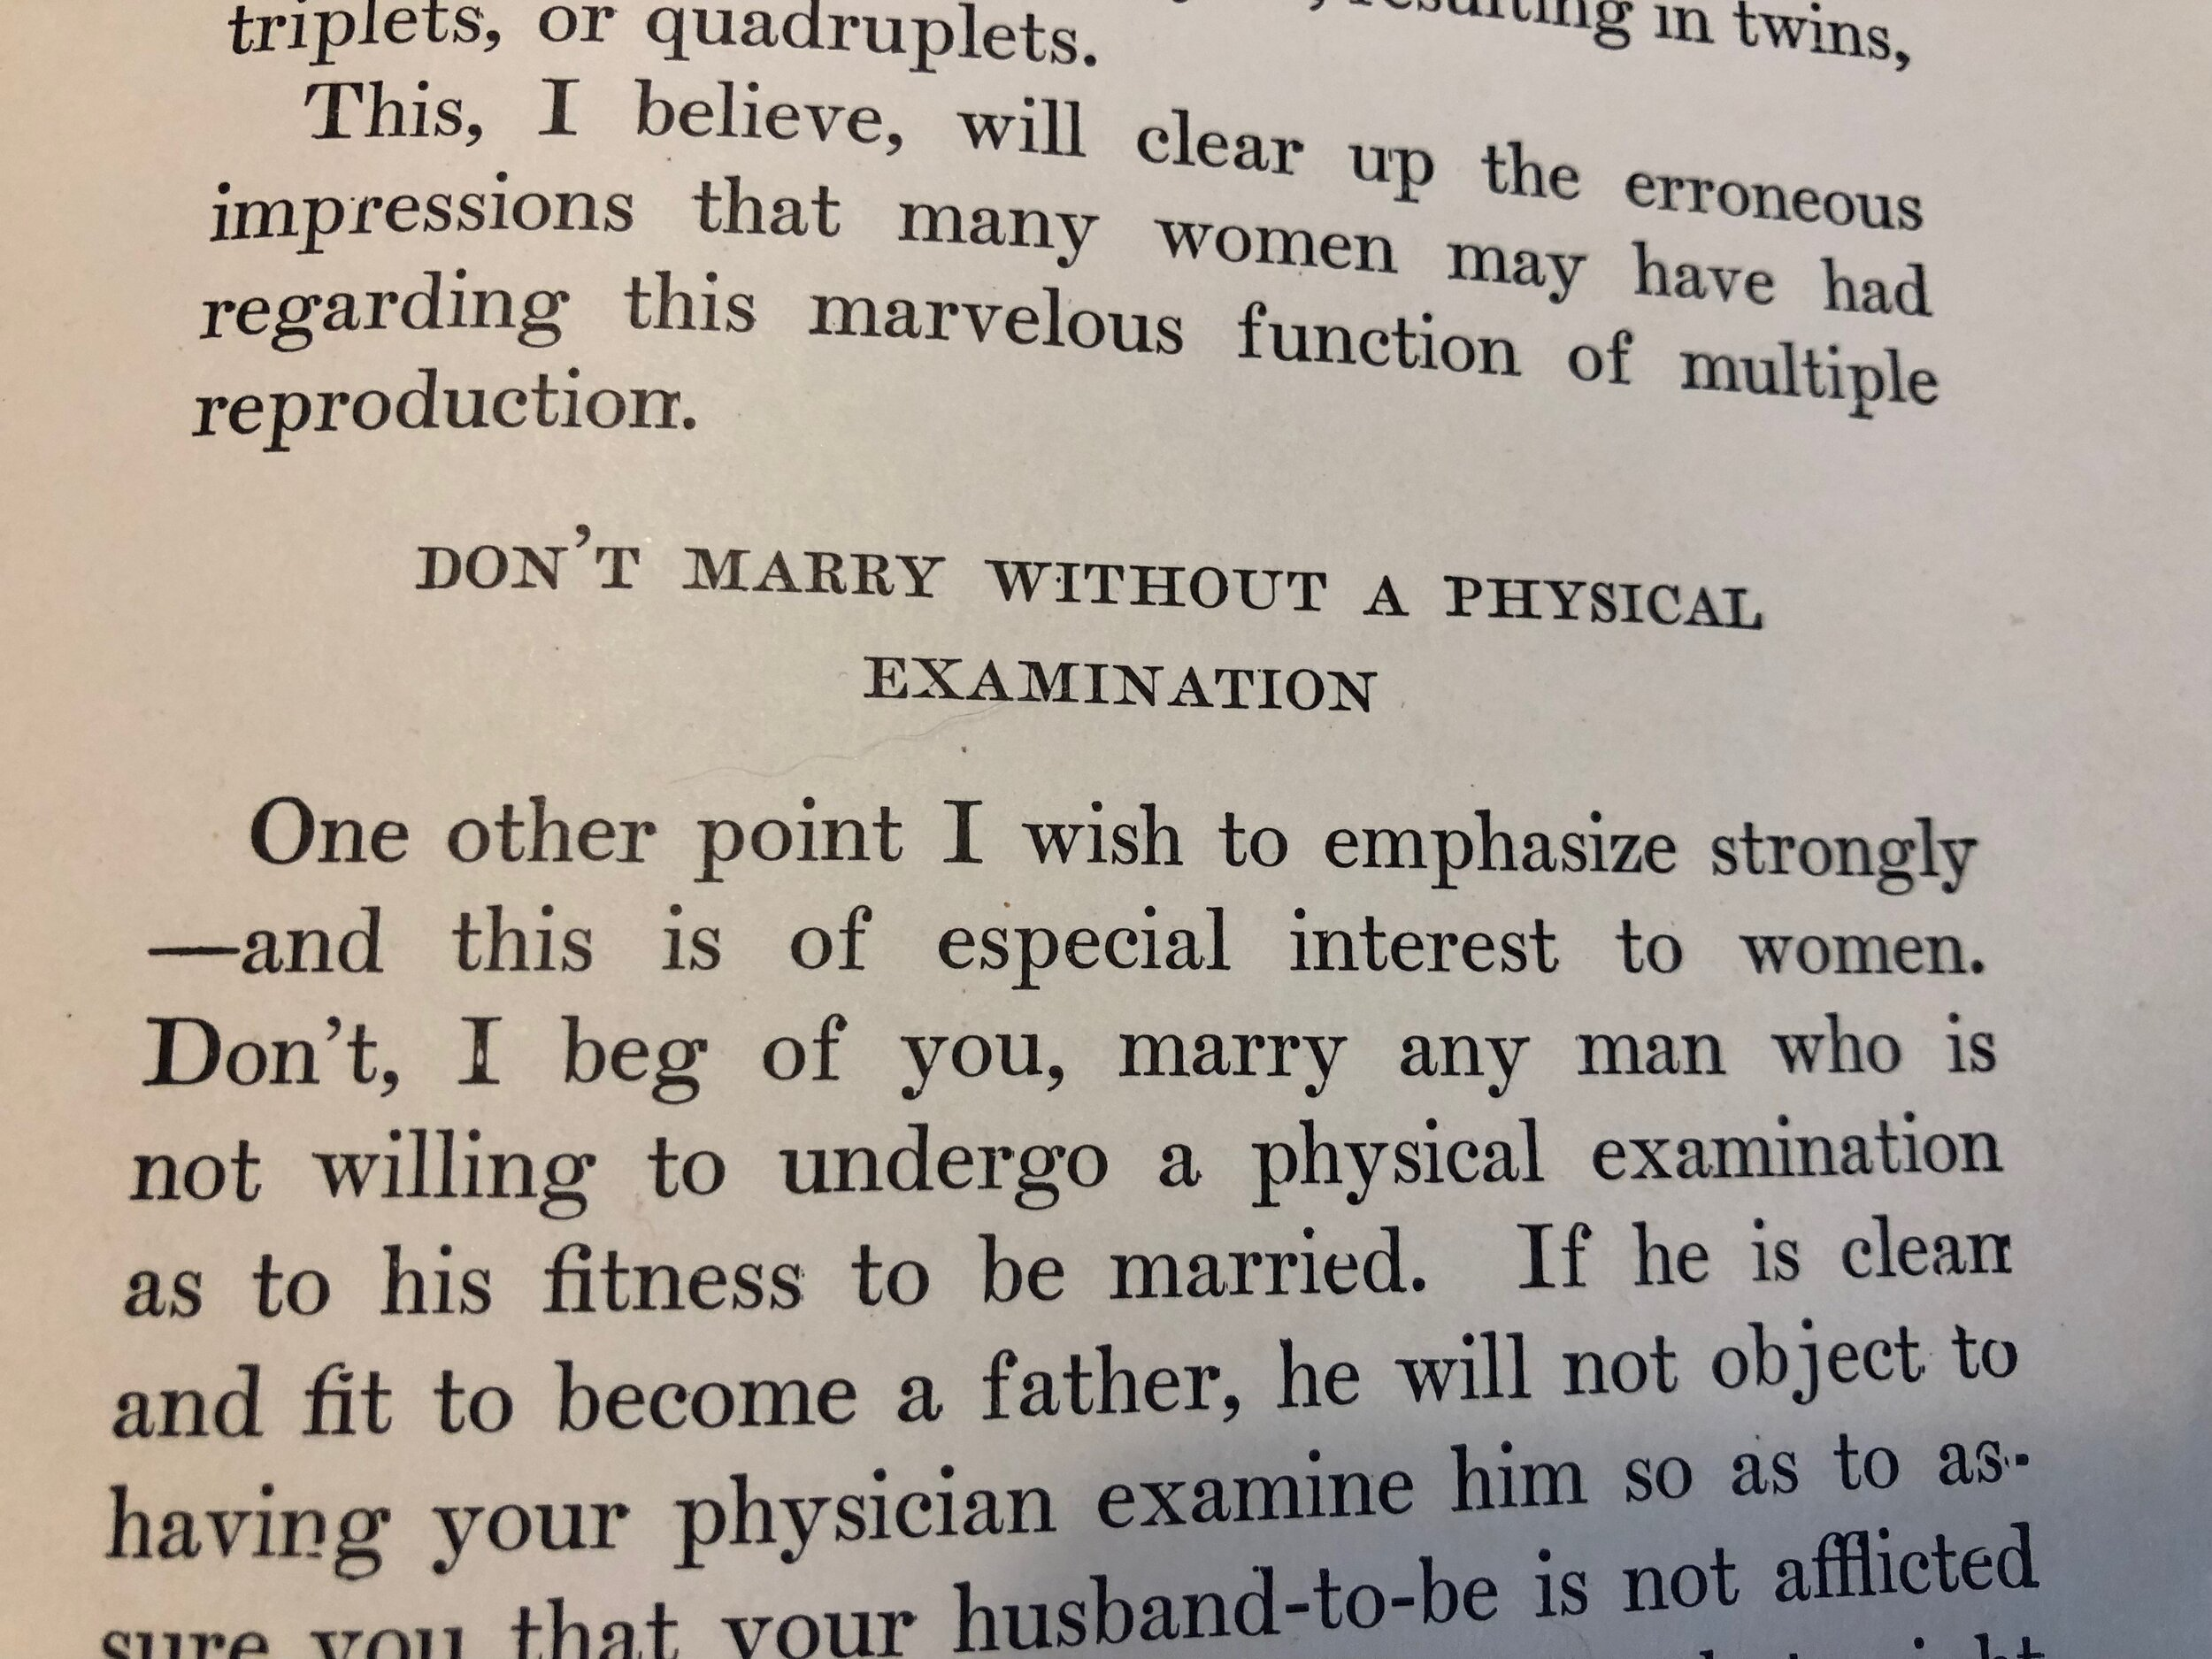 Don't marry without a physical examination first!